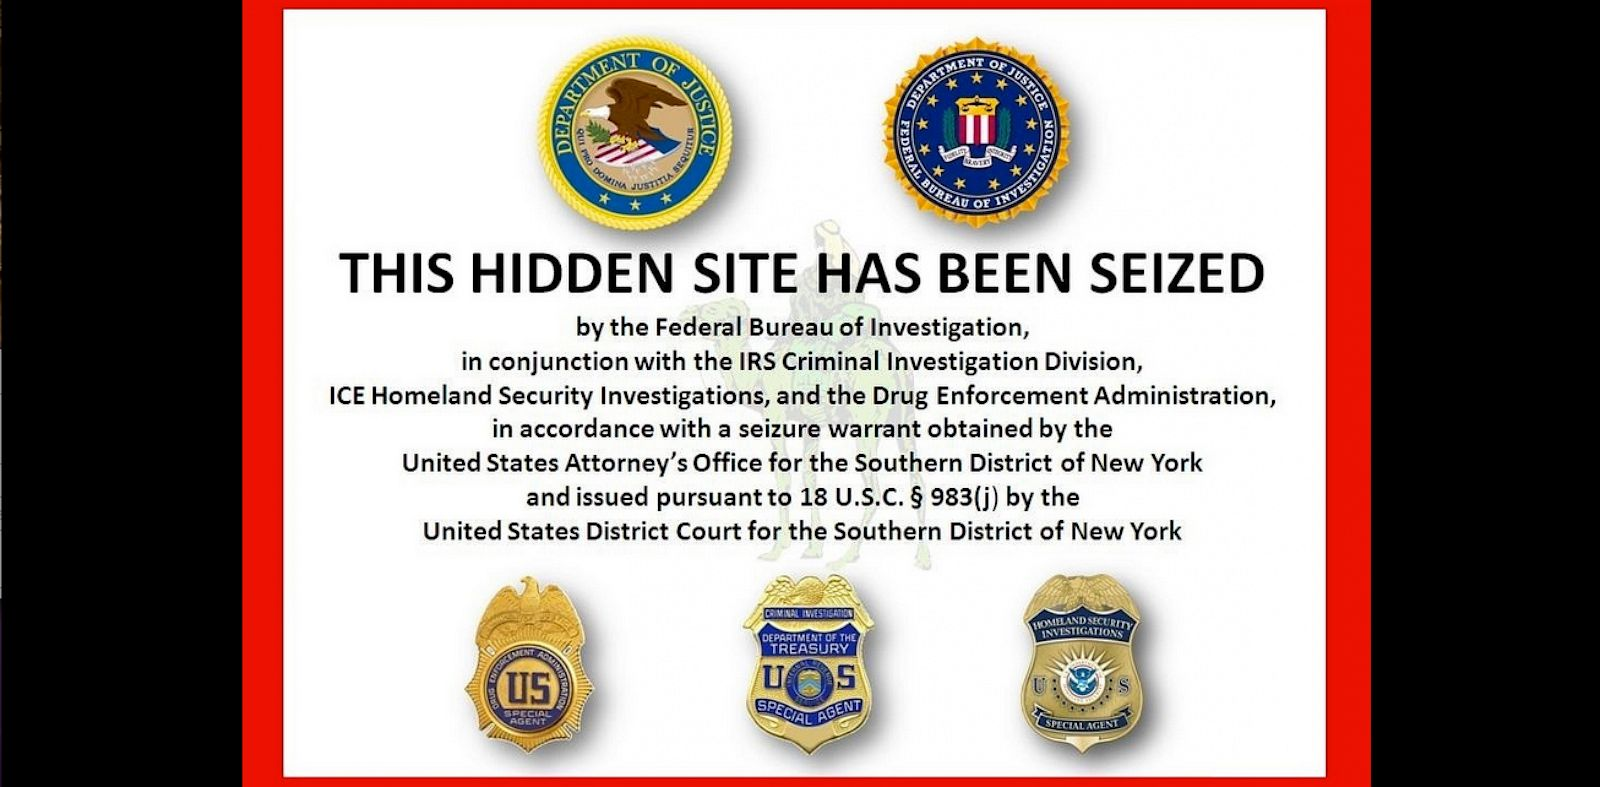 Bitcoins seized by fbi